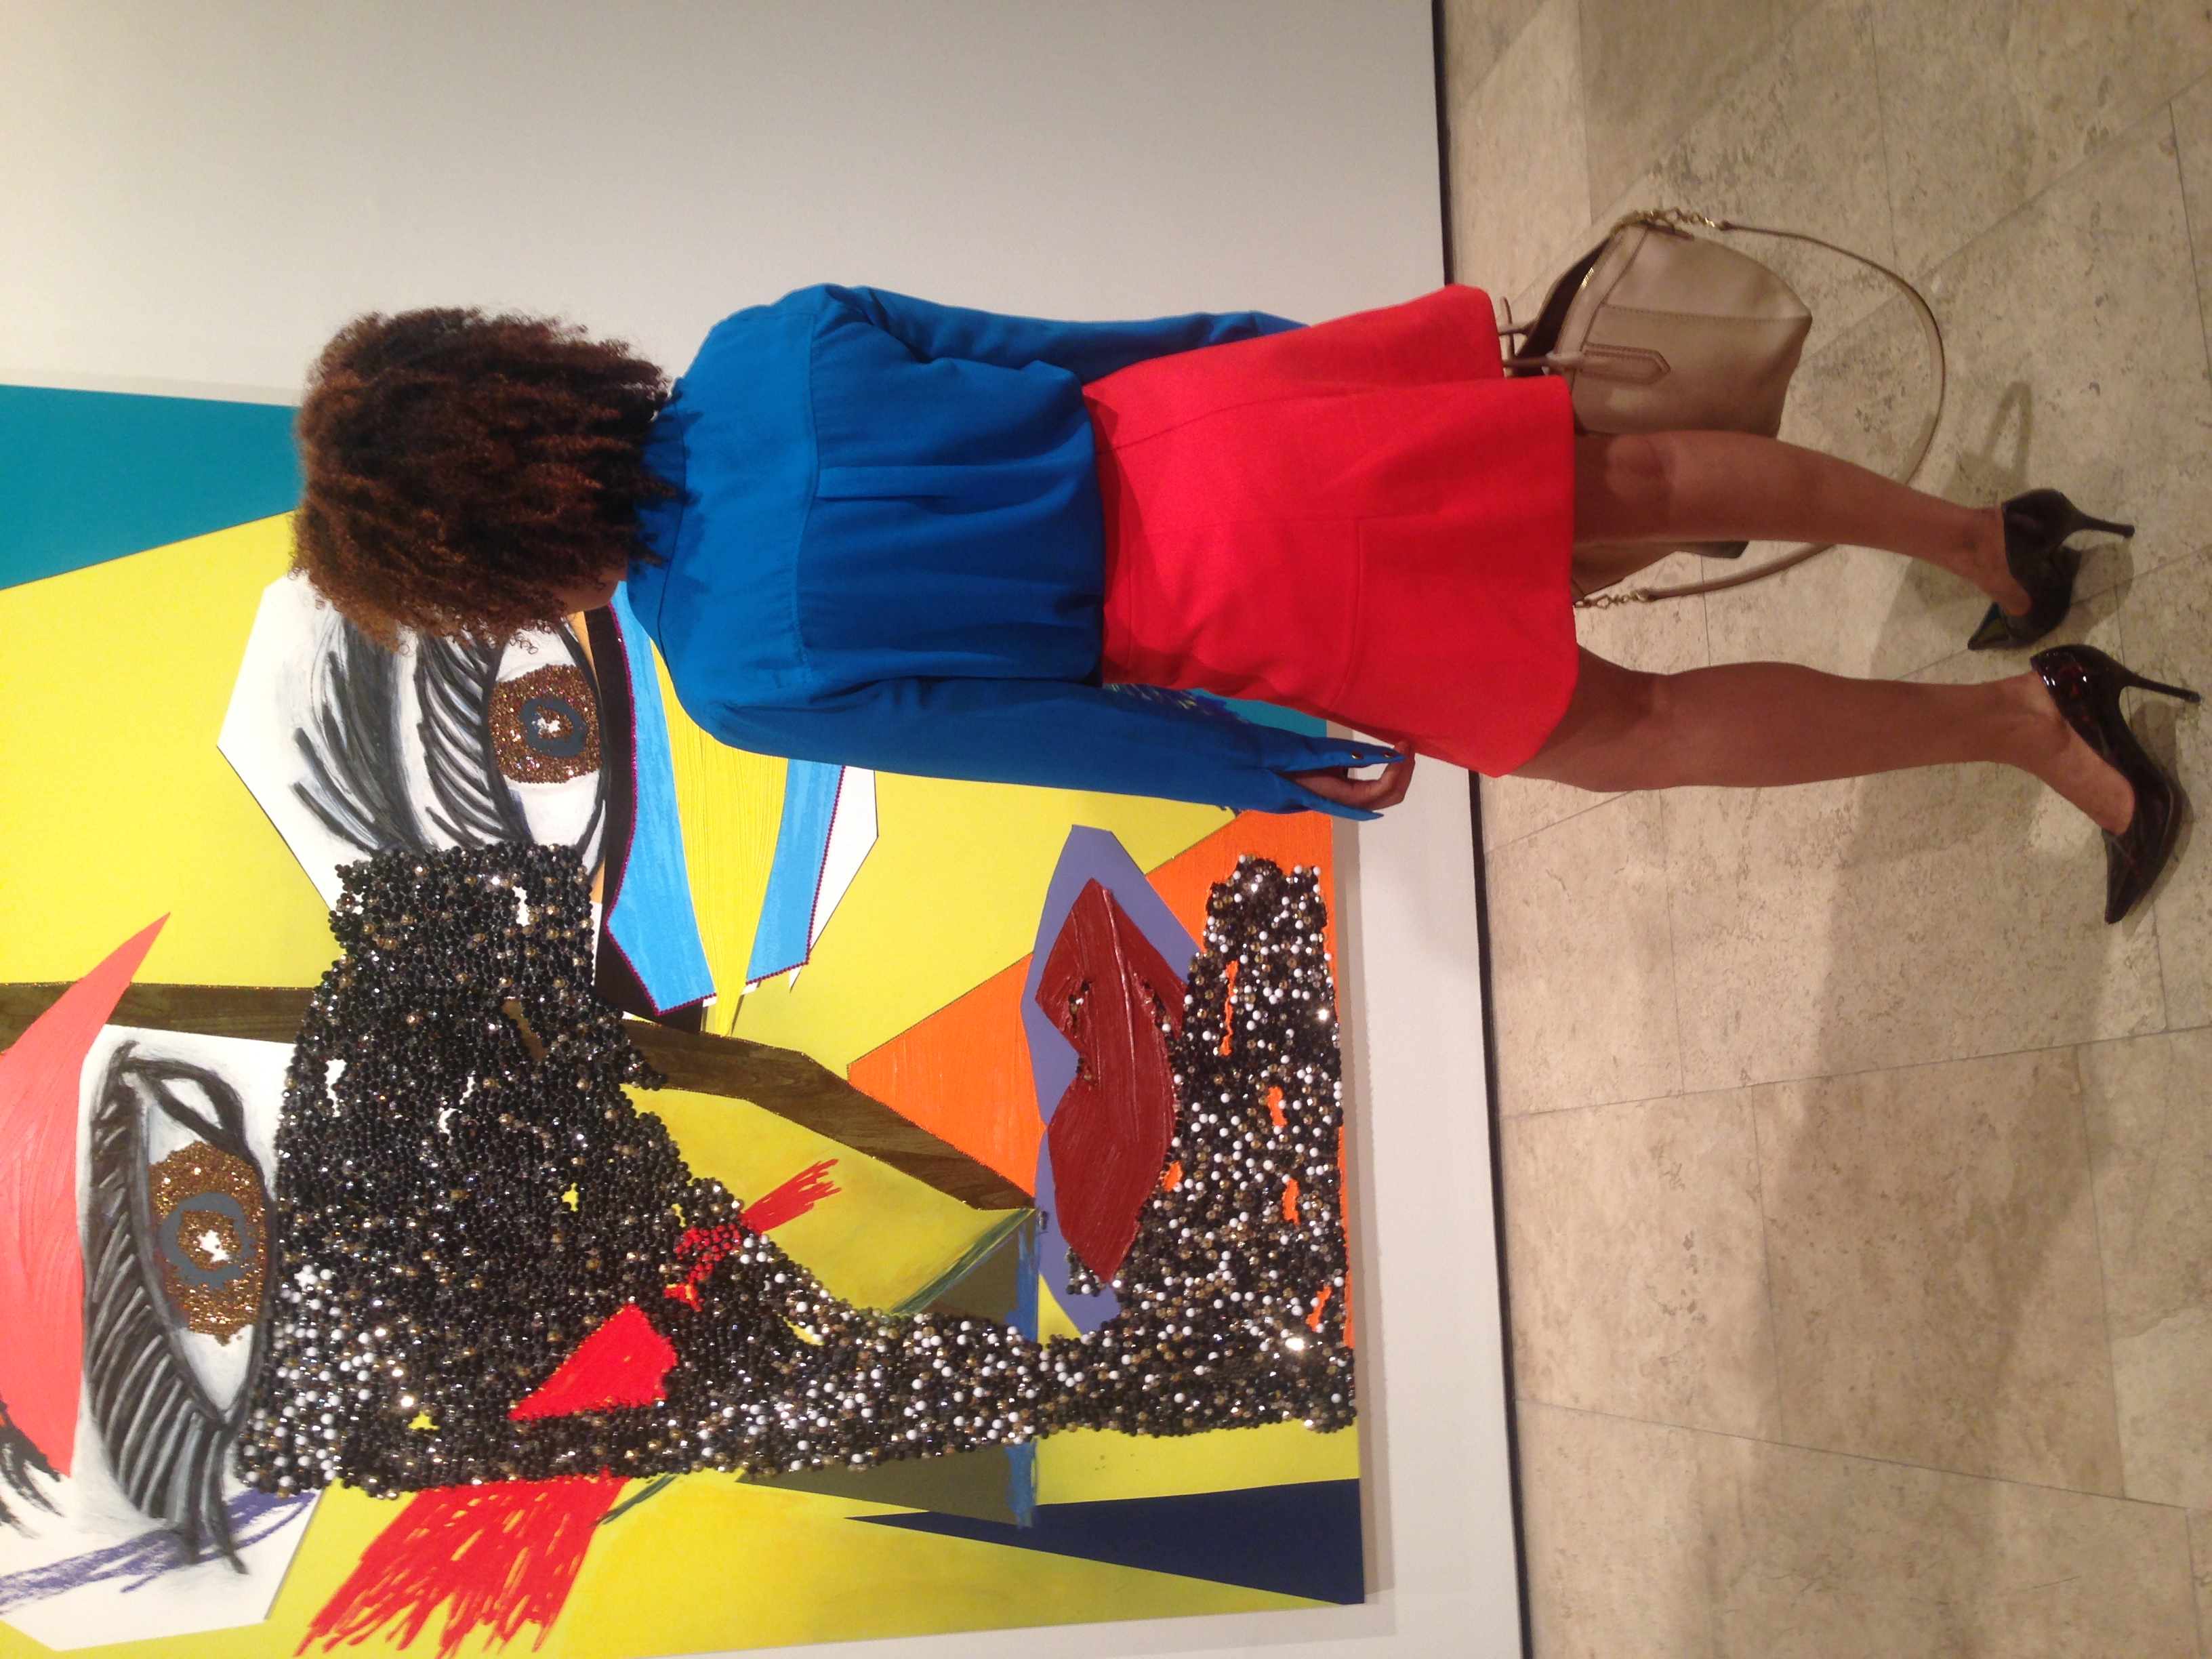 In front of 'Carla', from 'Tete de Femme' by Mickalene Thomas at Lehmann  Maupin, New York.